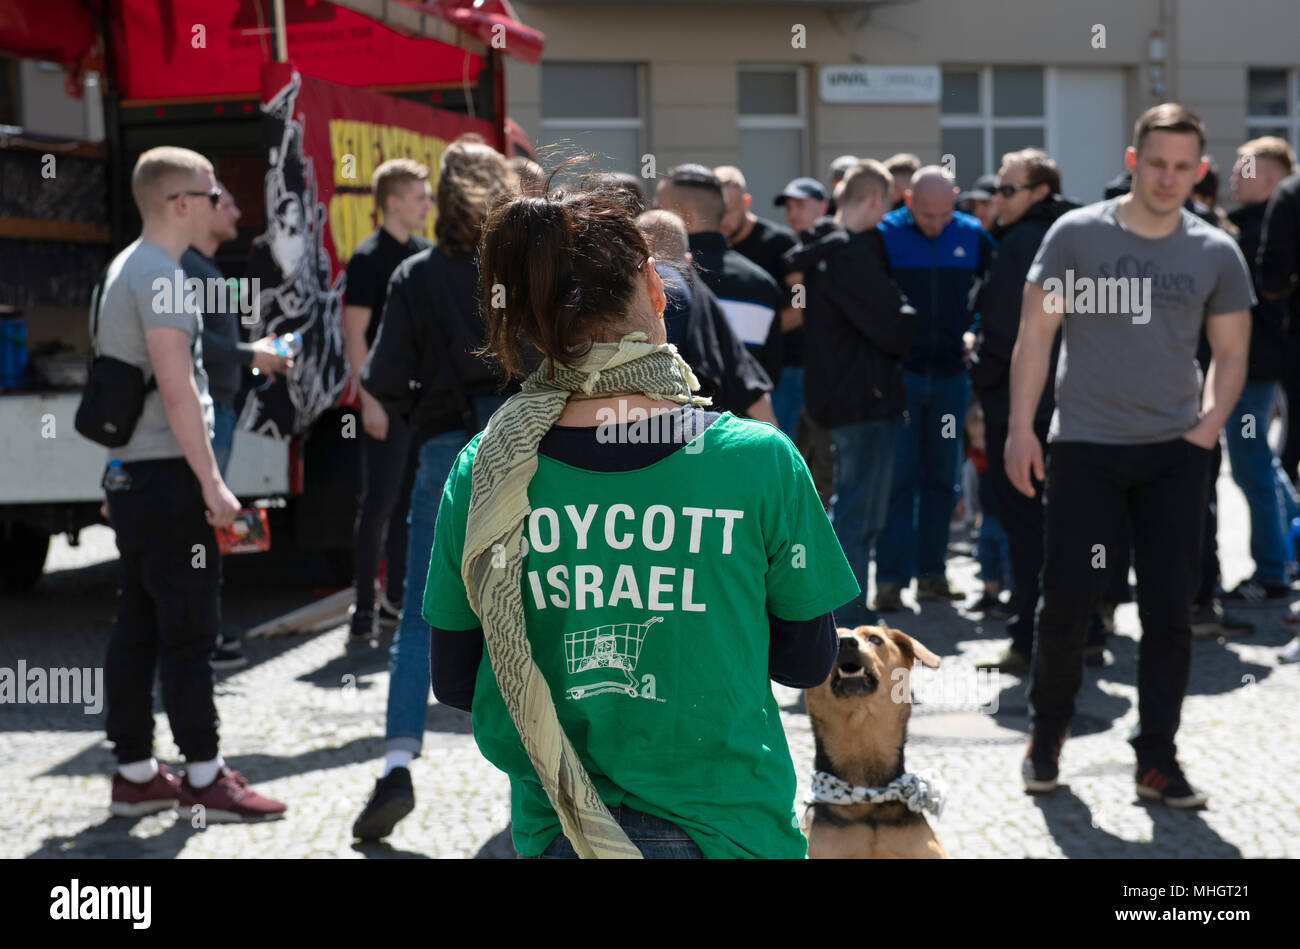 01 May 2018, Germany, Berlin: A protestor wearing a t-shirt reading 'Boycott Israel' at the Karl-Marx-Platz in the district of Neukoelln. According to police reports, more than 100 people with a leftist radical and pro-Palestine background gathered for the demonstration called for by group 'Jugendwiderstand'. Photo: Paul Zinken/dpa Credit: dpa picture alliance/Alamy Live News - Stock Image